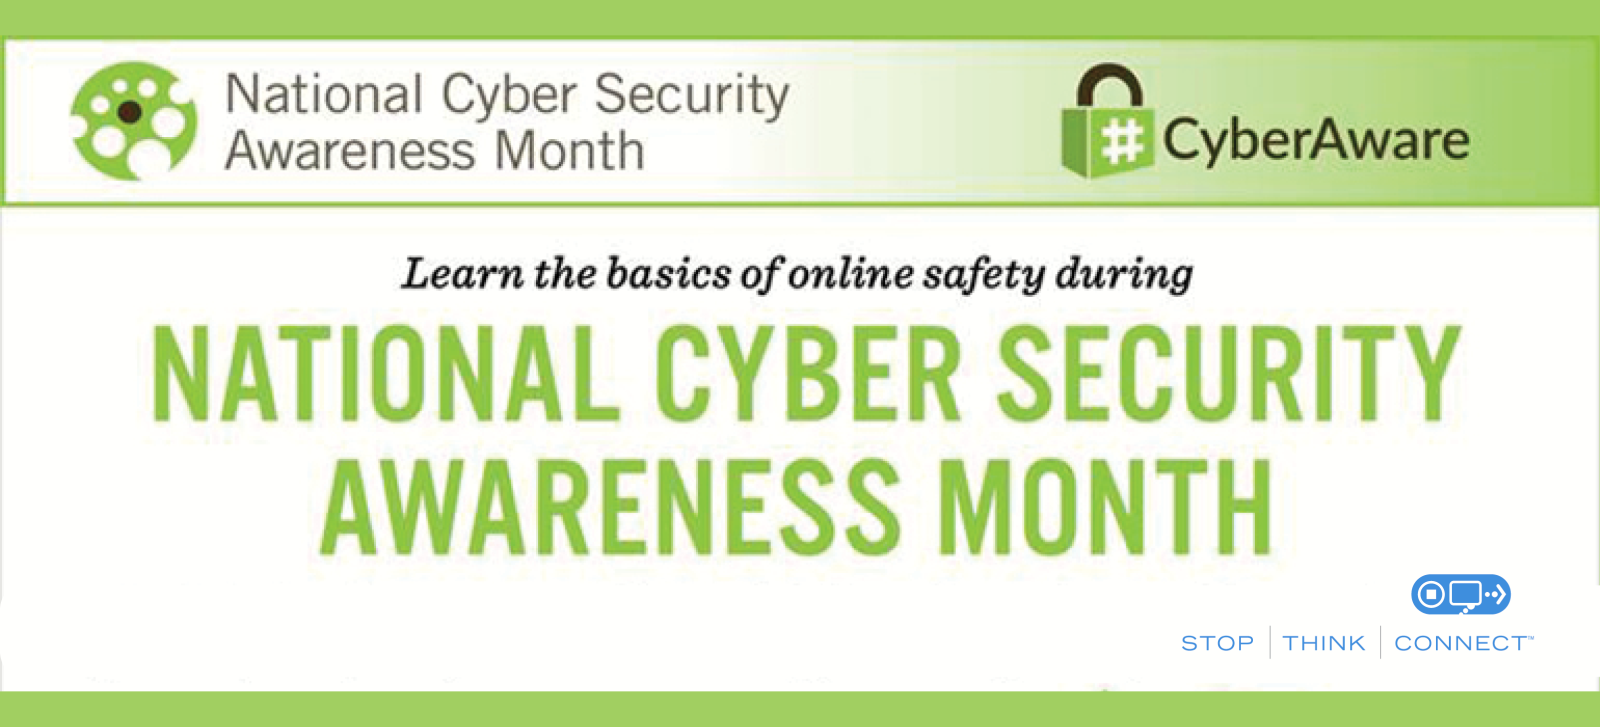 National Cyber Security Awareness Month 2017 Champion - Northwest Bank